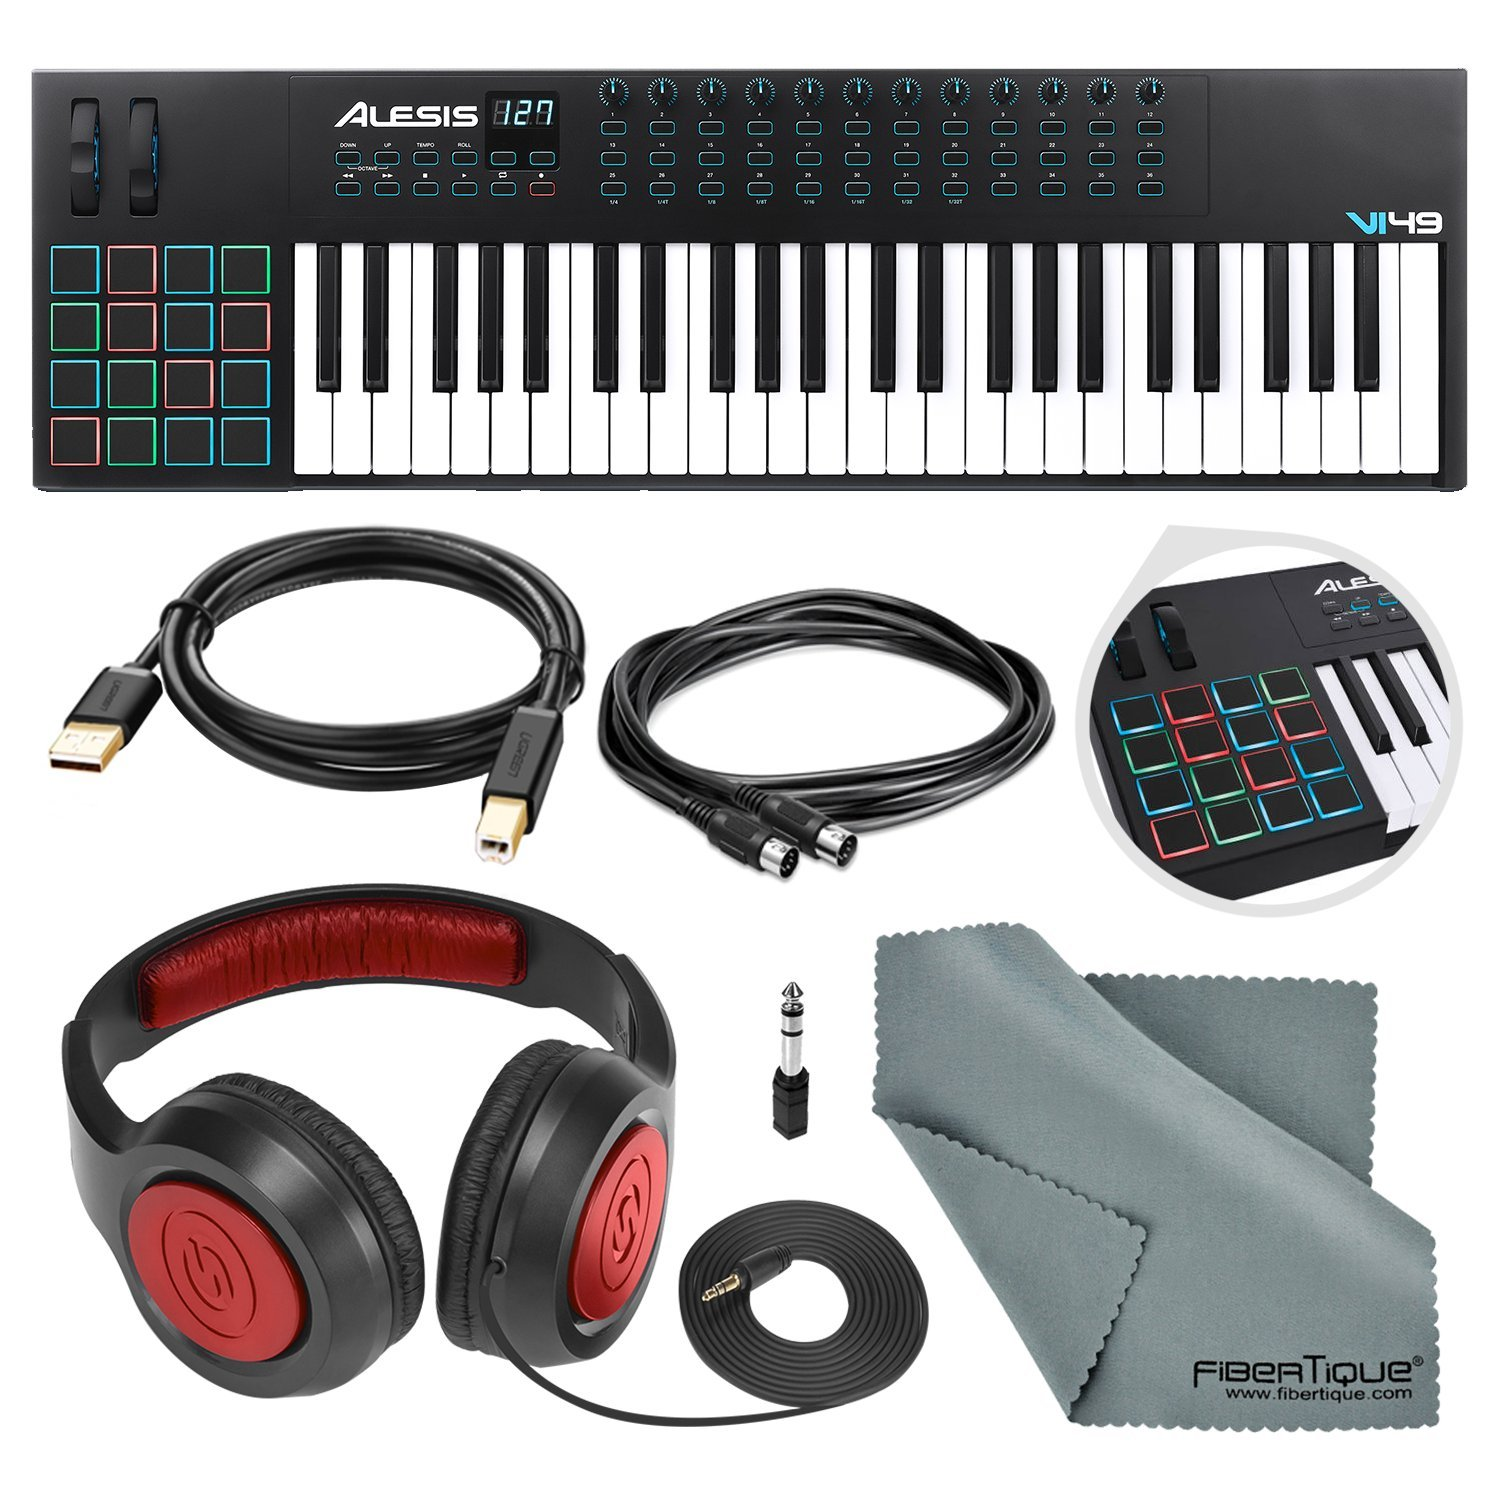 Alesis VI49 25-KeyUSB/MIDI Keyboard & Drum Pad Controller with Samson Over-Ear Headphone, Cables, and Microfiber Cloth by Alesis